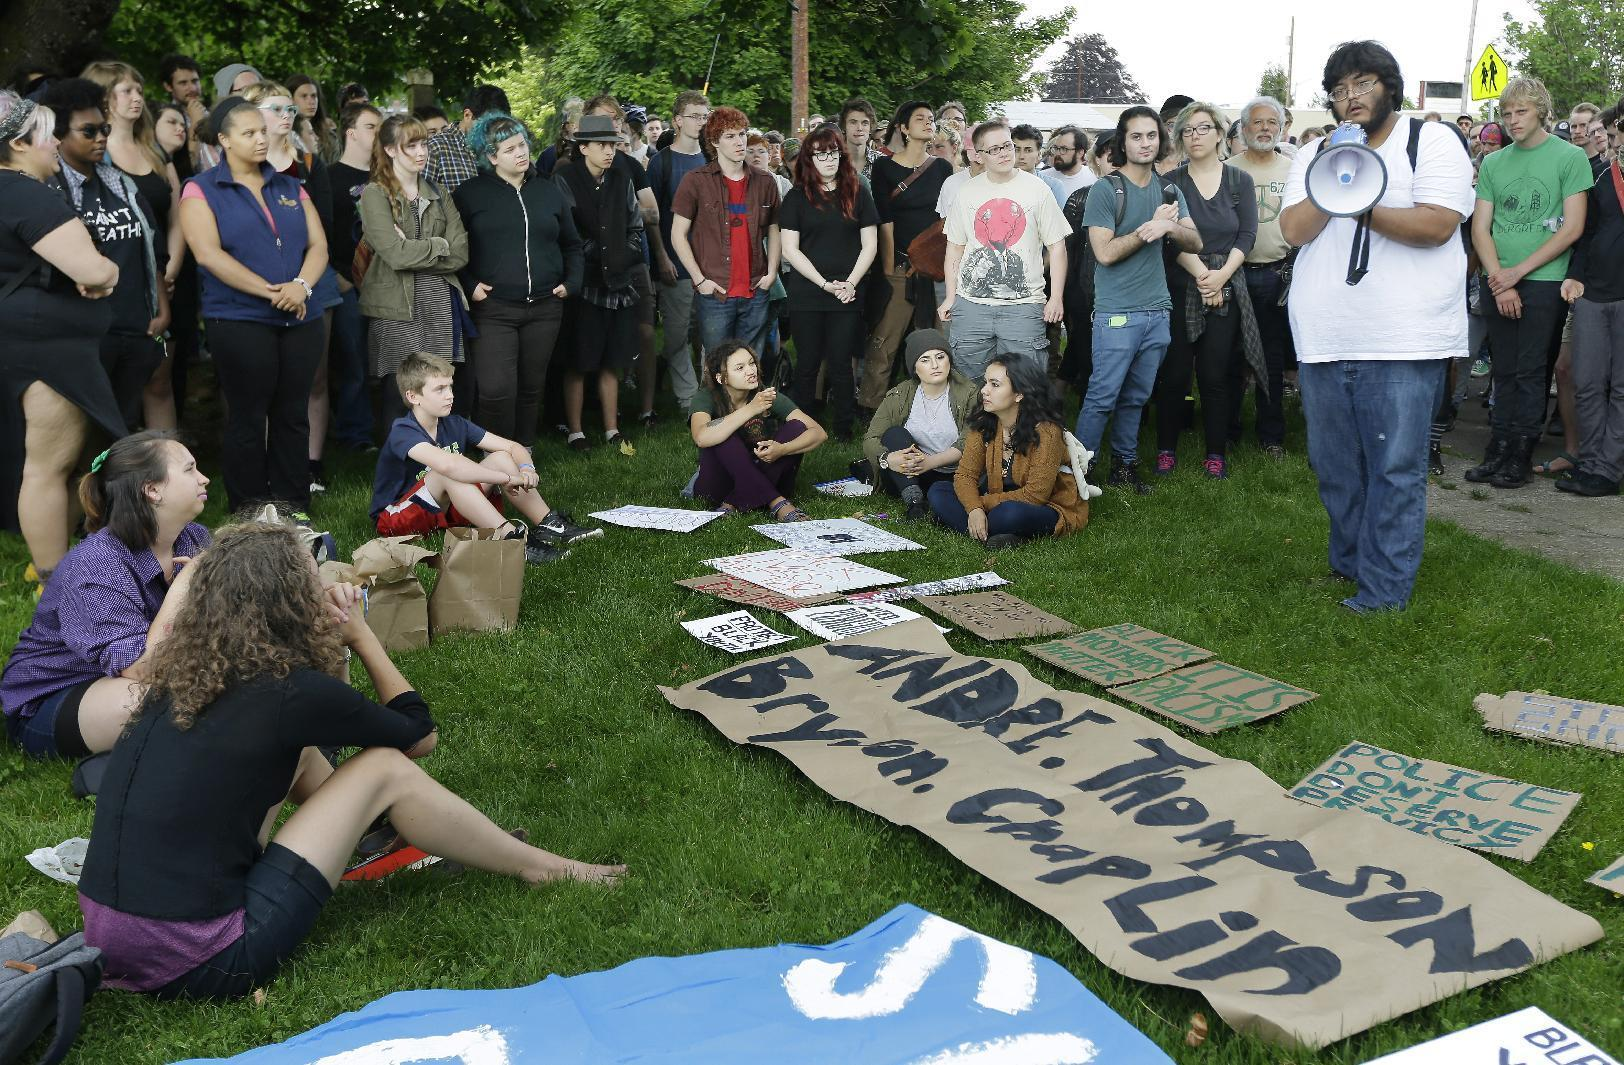 Protests over police shooting of 2 unarmed men in Washington state for trying to steal beer